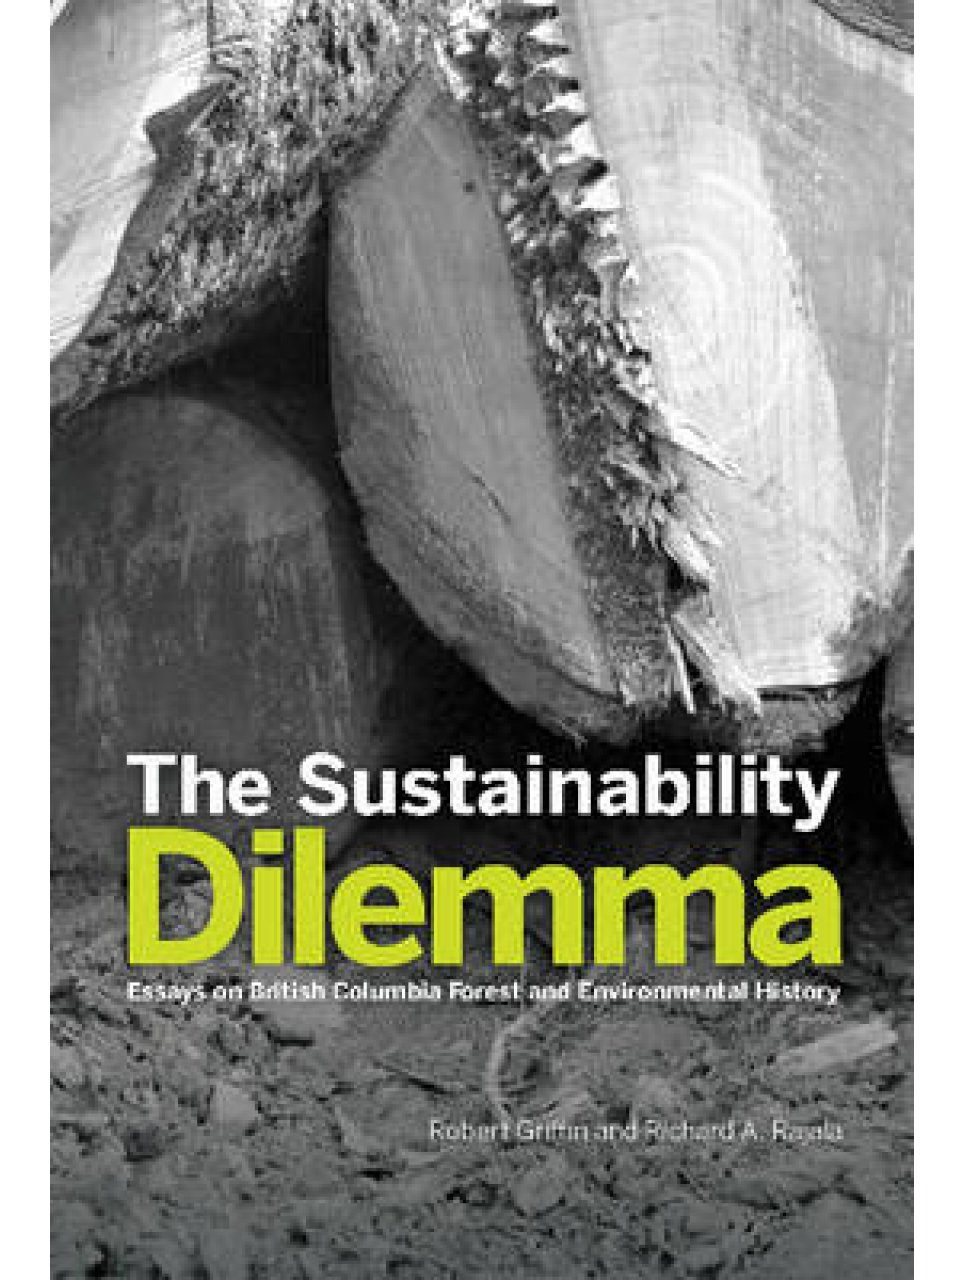 The Sustainability Dilemma